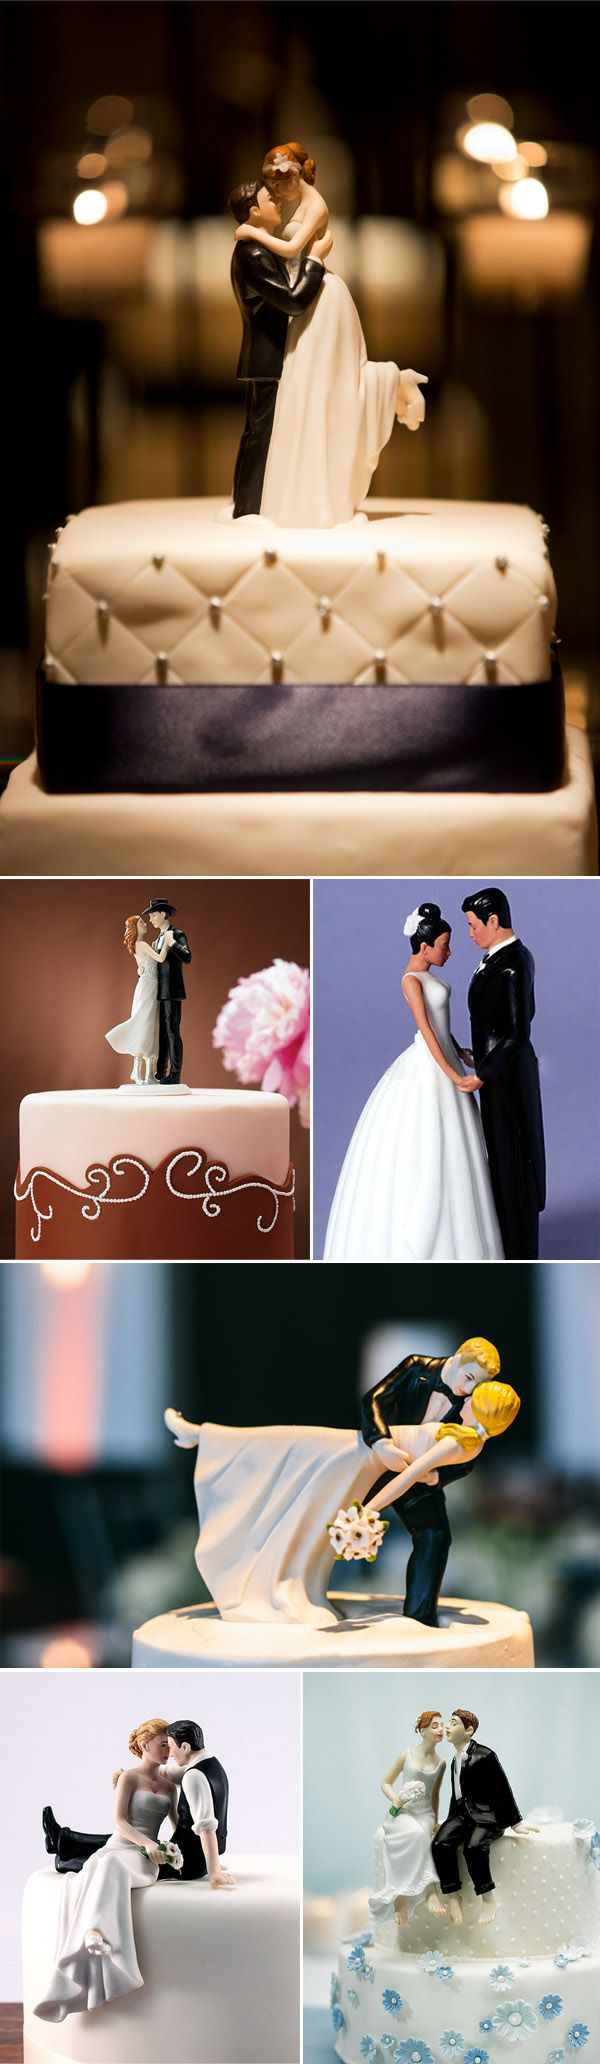 romantic bride and groom wedding cake topper ideas